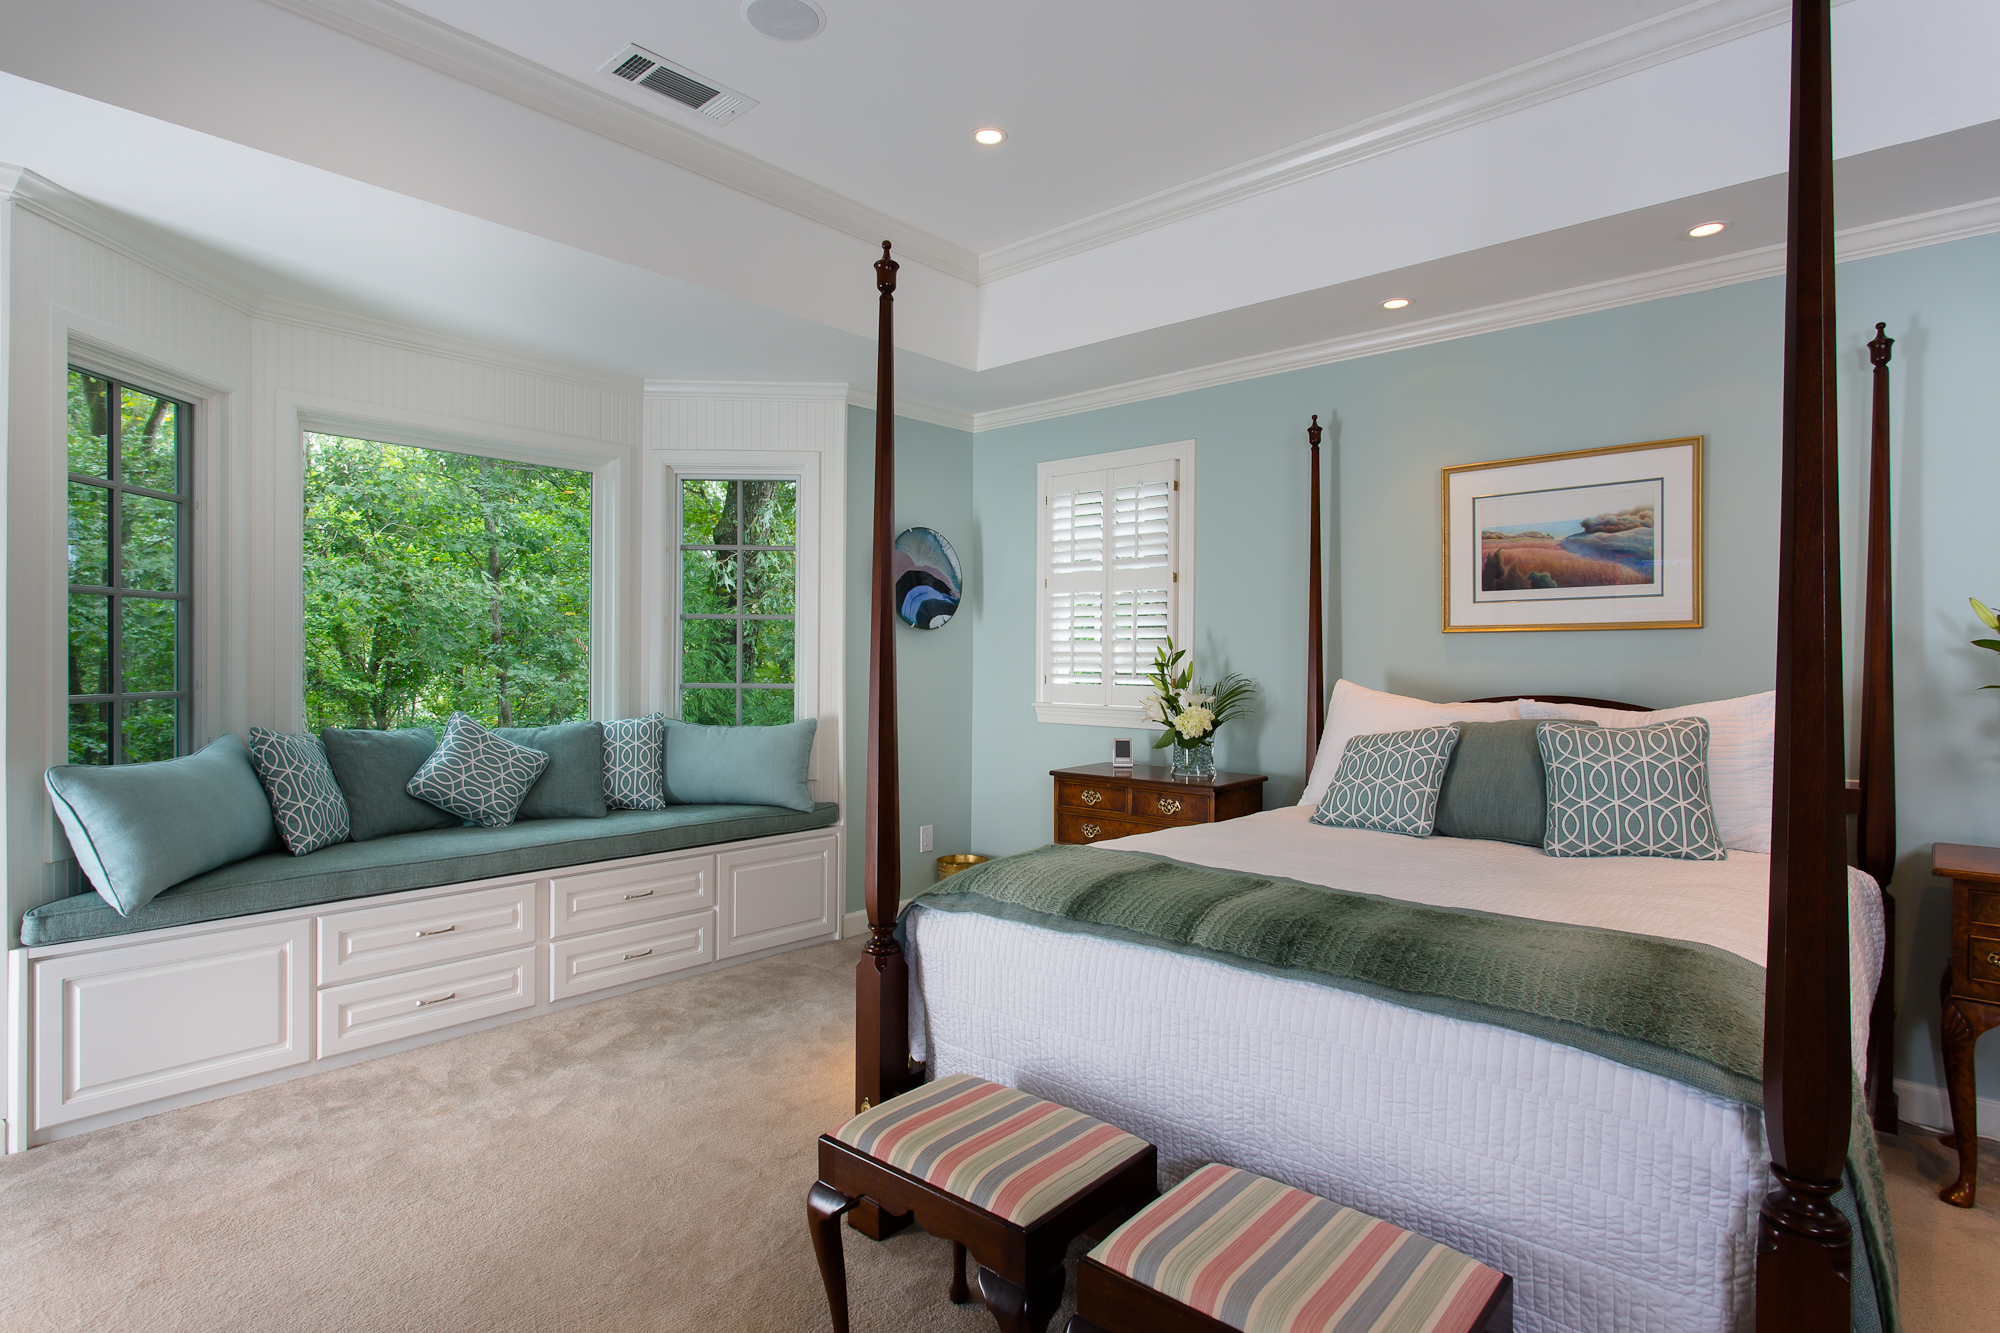 Featured on Houzz: 8 Ways to Create a Home That Helps You Recharge